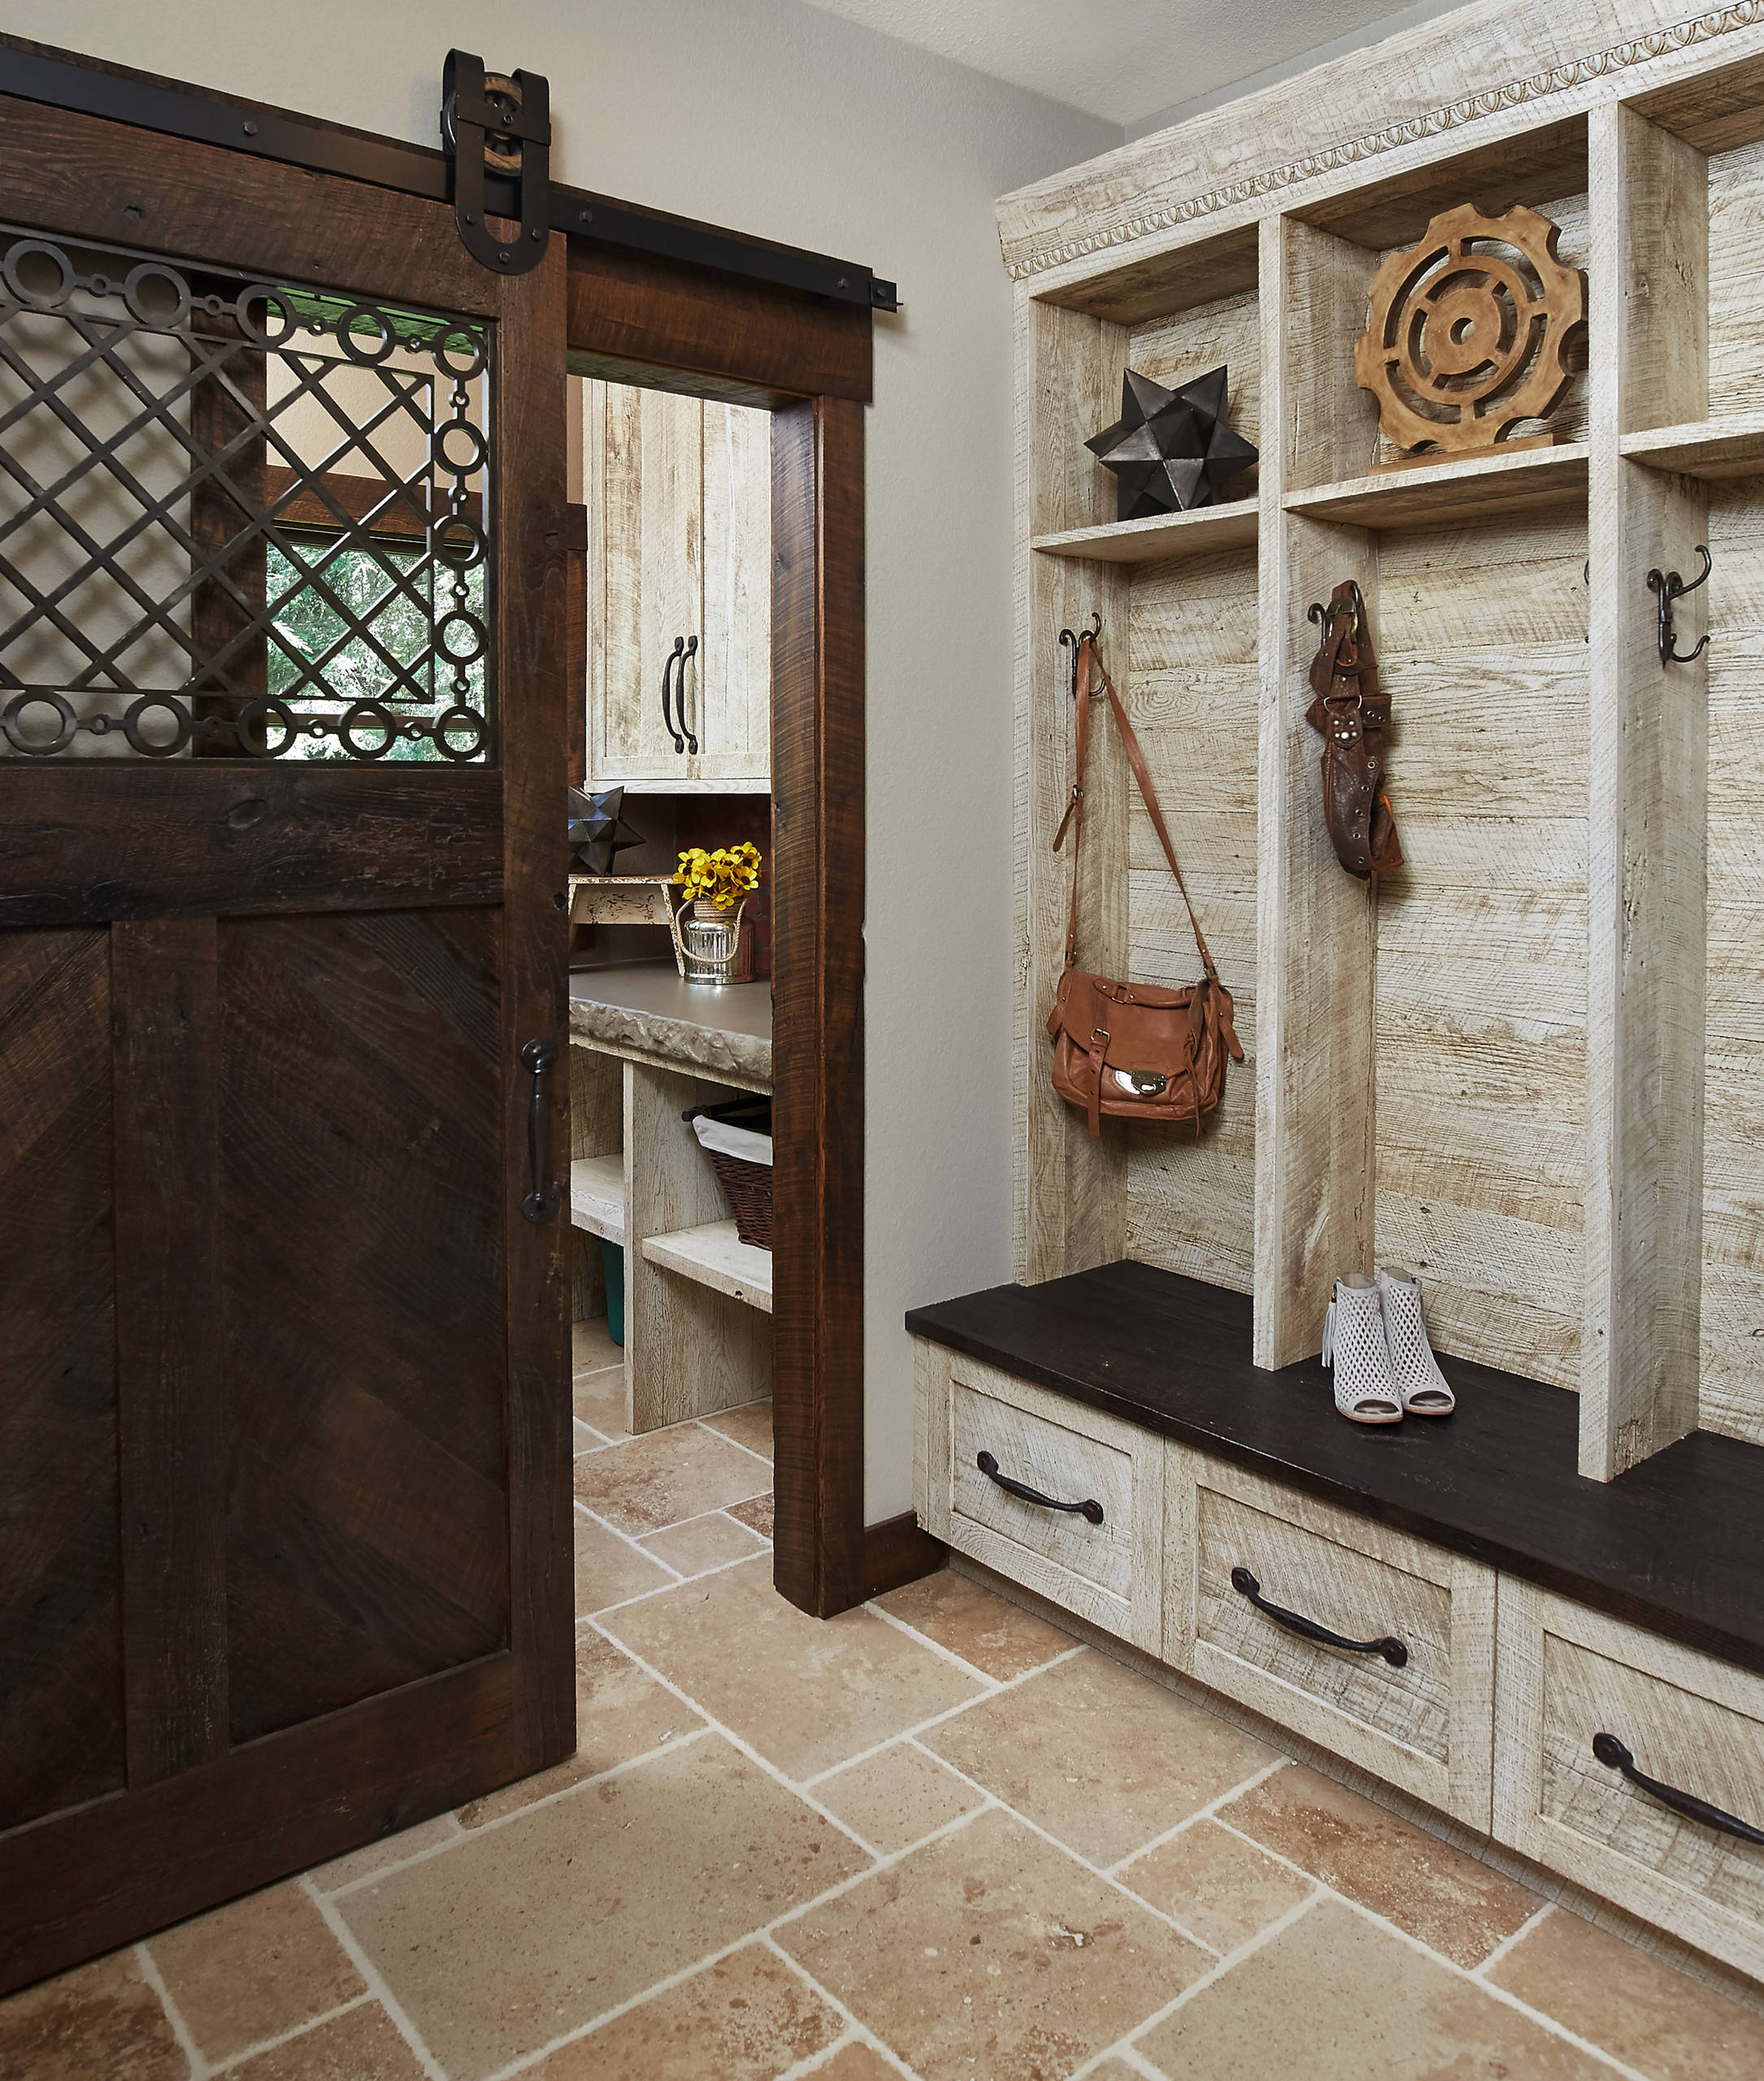 Home Interior Entrance Design Ideas: 15 Welcoming Rustic Entry Hall Designs You're Going To Adore